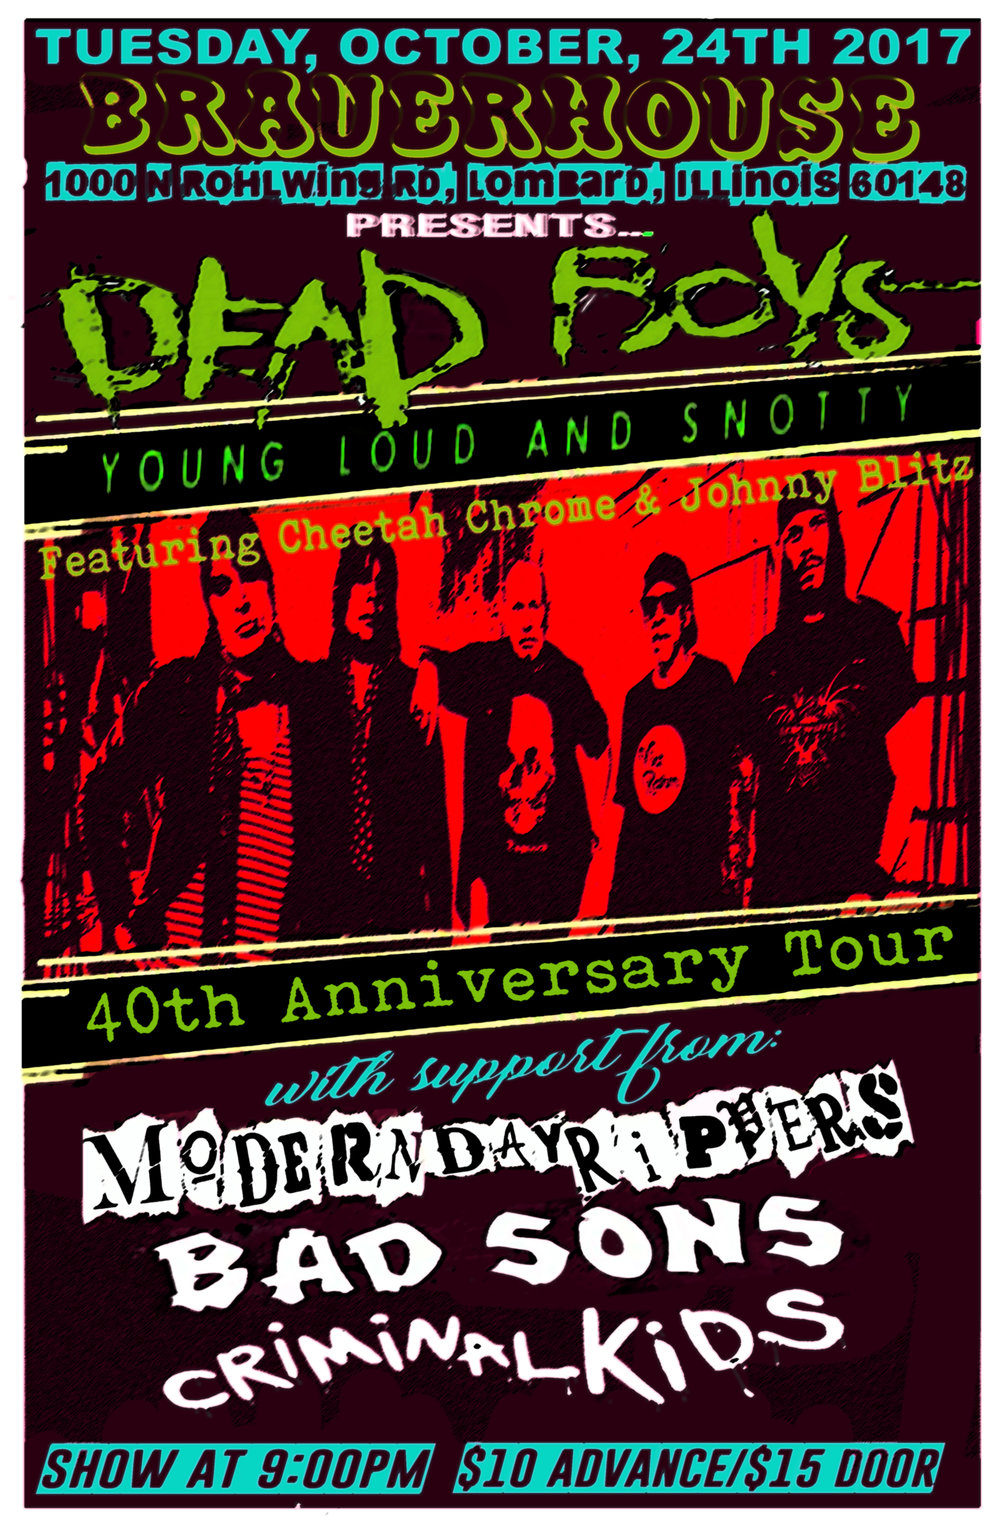 WITH DEAD BOYS AND BAD SONS - at Brauerhouse Lombard Oct 24th 2017